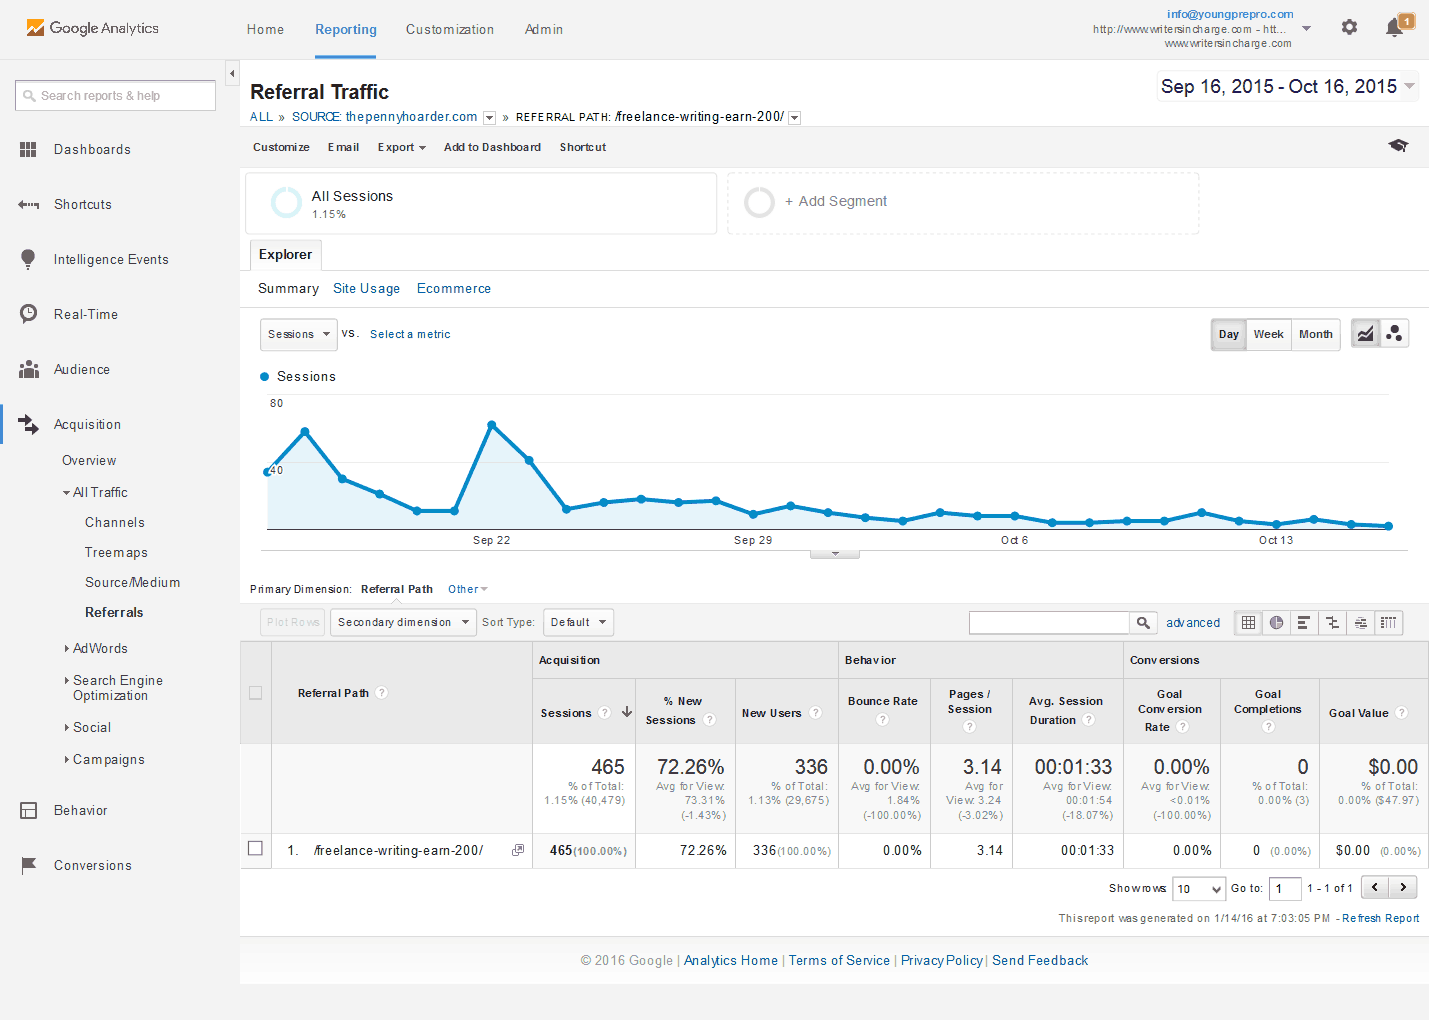 One month traffic from my guest post on ThePennyHoarder.com